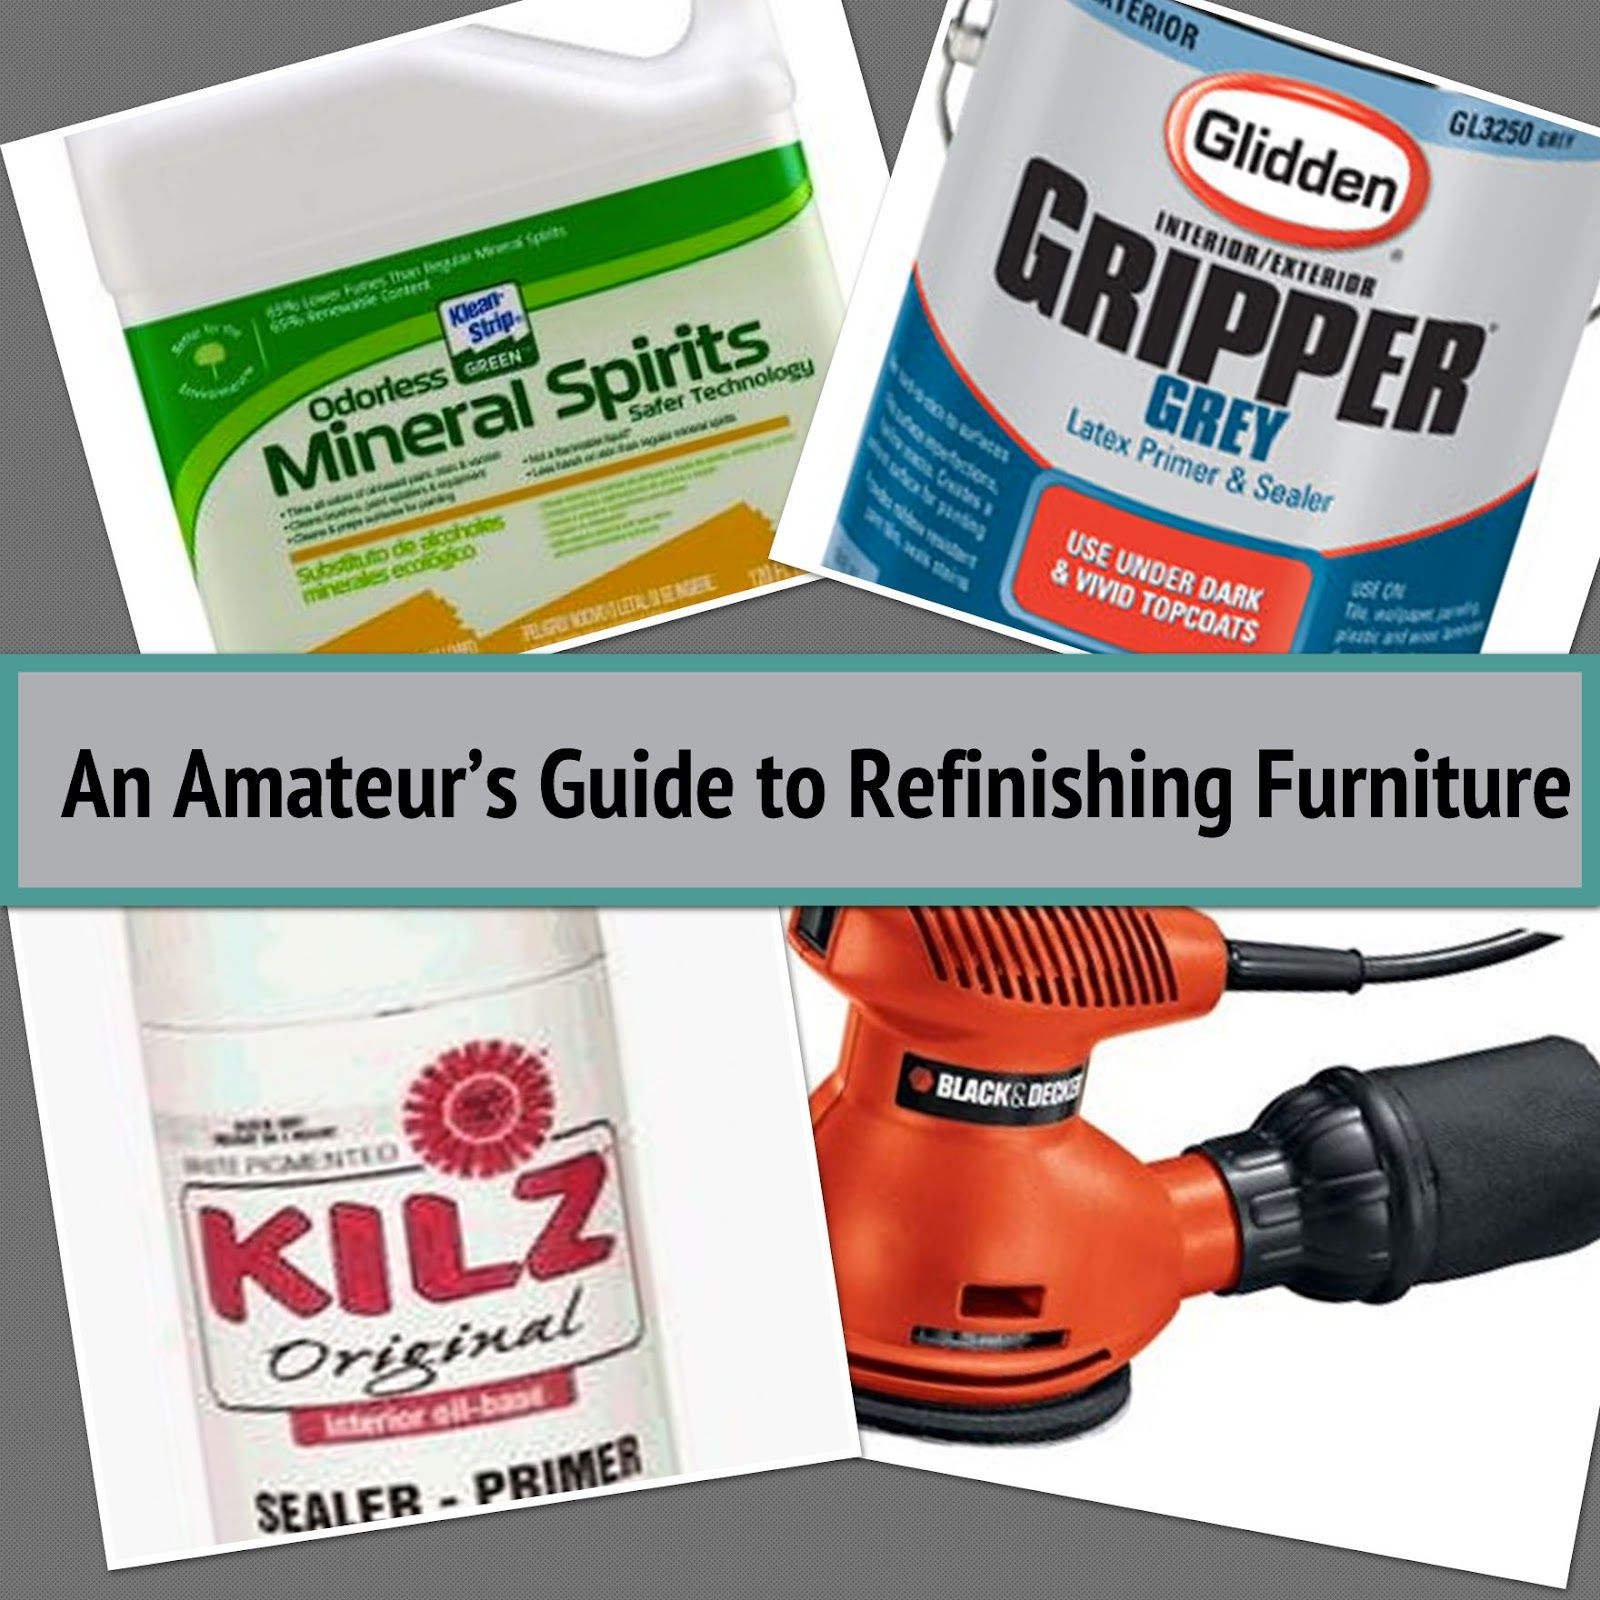 diy furniture refinishing projects. I Am A Self-professed Amateur When It Comes To Refinishing Furniture, But Share My Projects Always Have People Tell Me About An A. Diy Furniture T